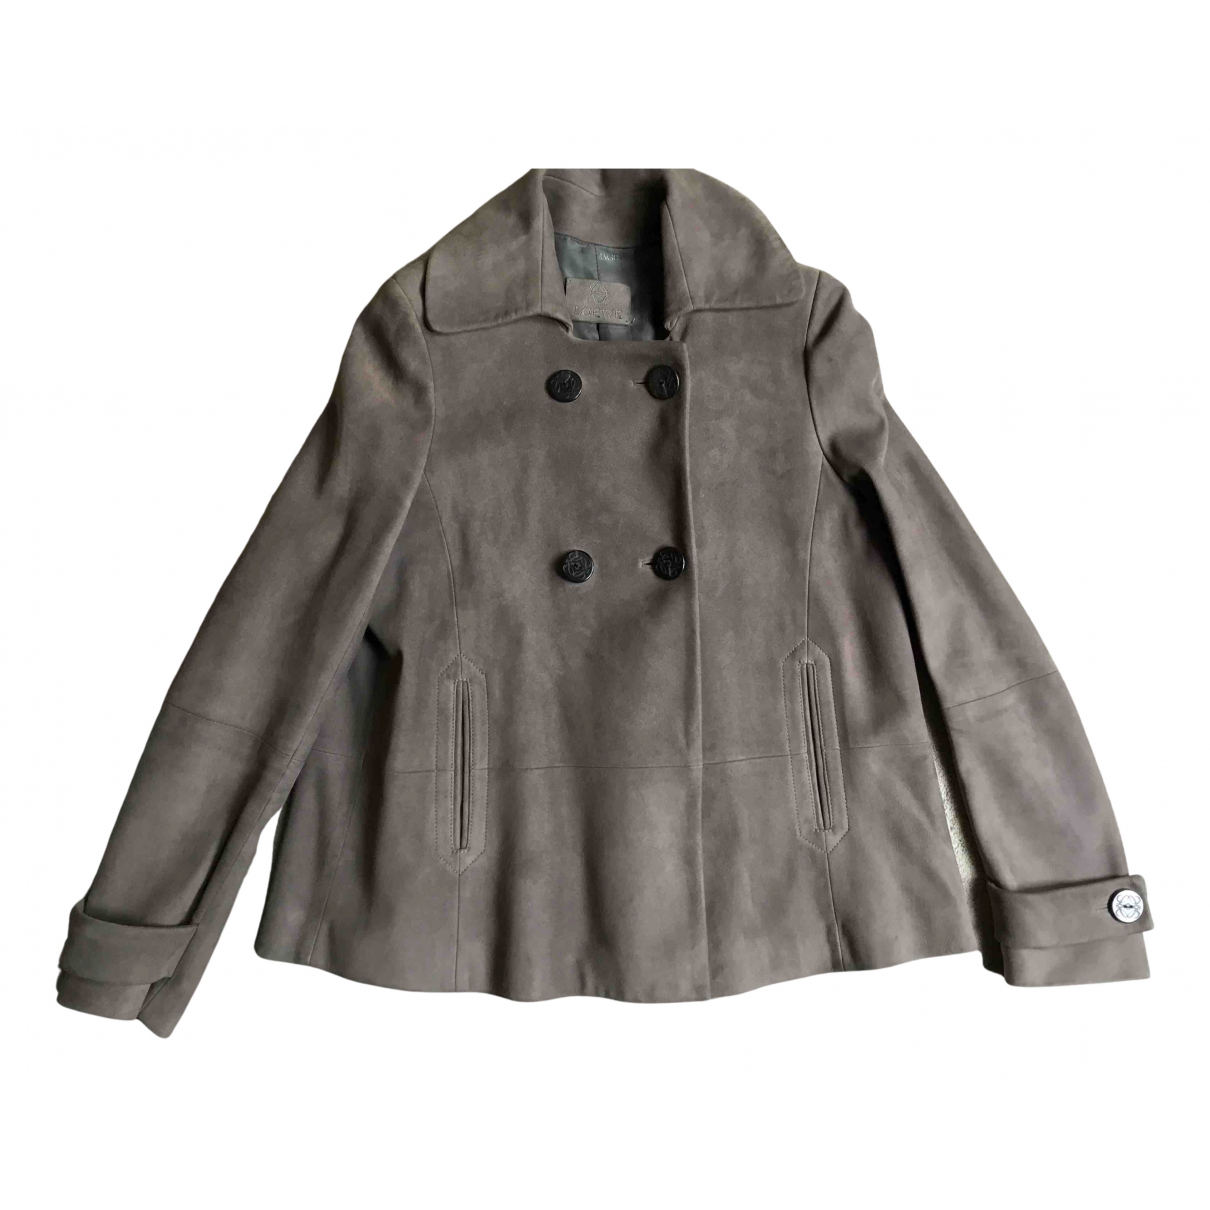 Loewe N Beige Suede jacket for Women 38 FR